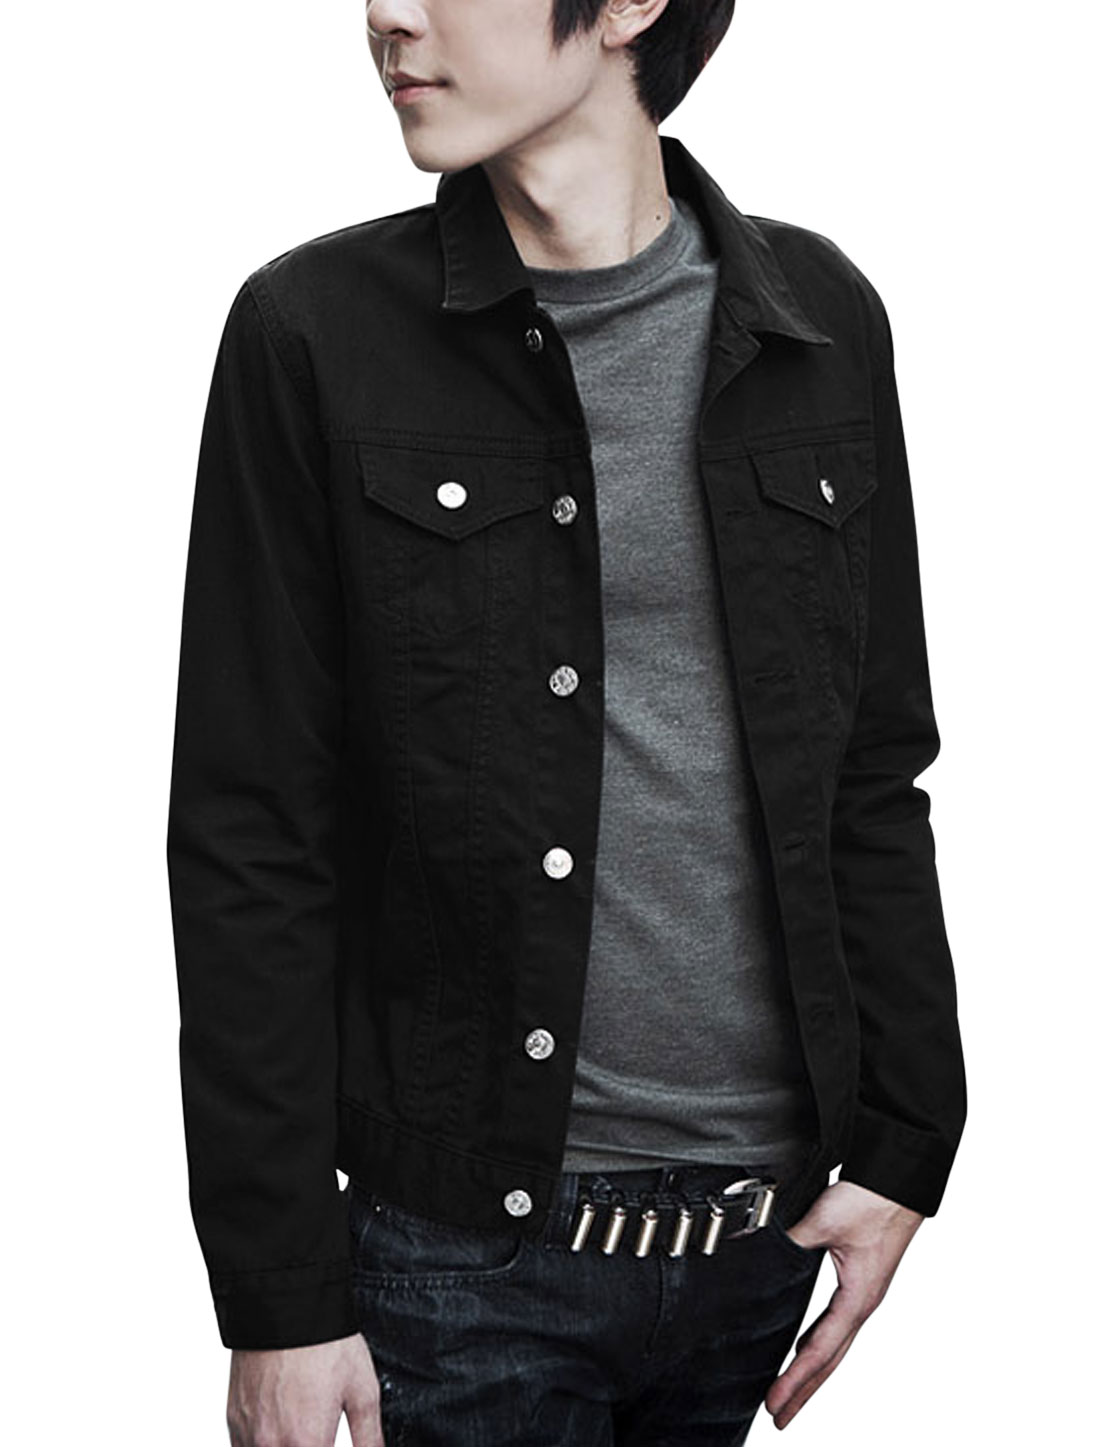 Men Turn Down Collar Long Sleeves Button Front Jacket Black M